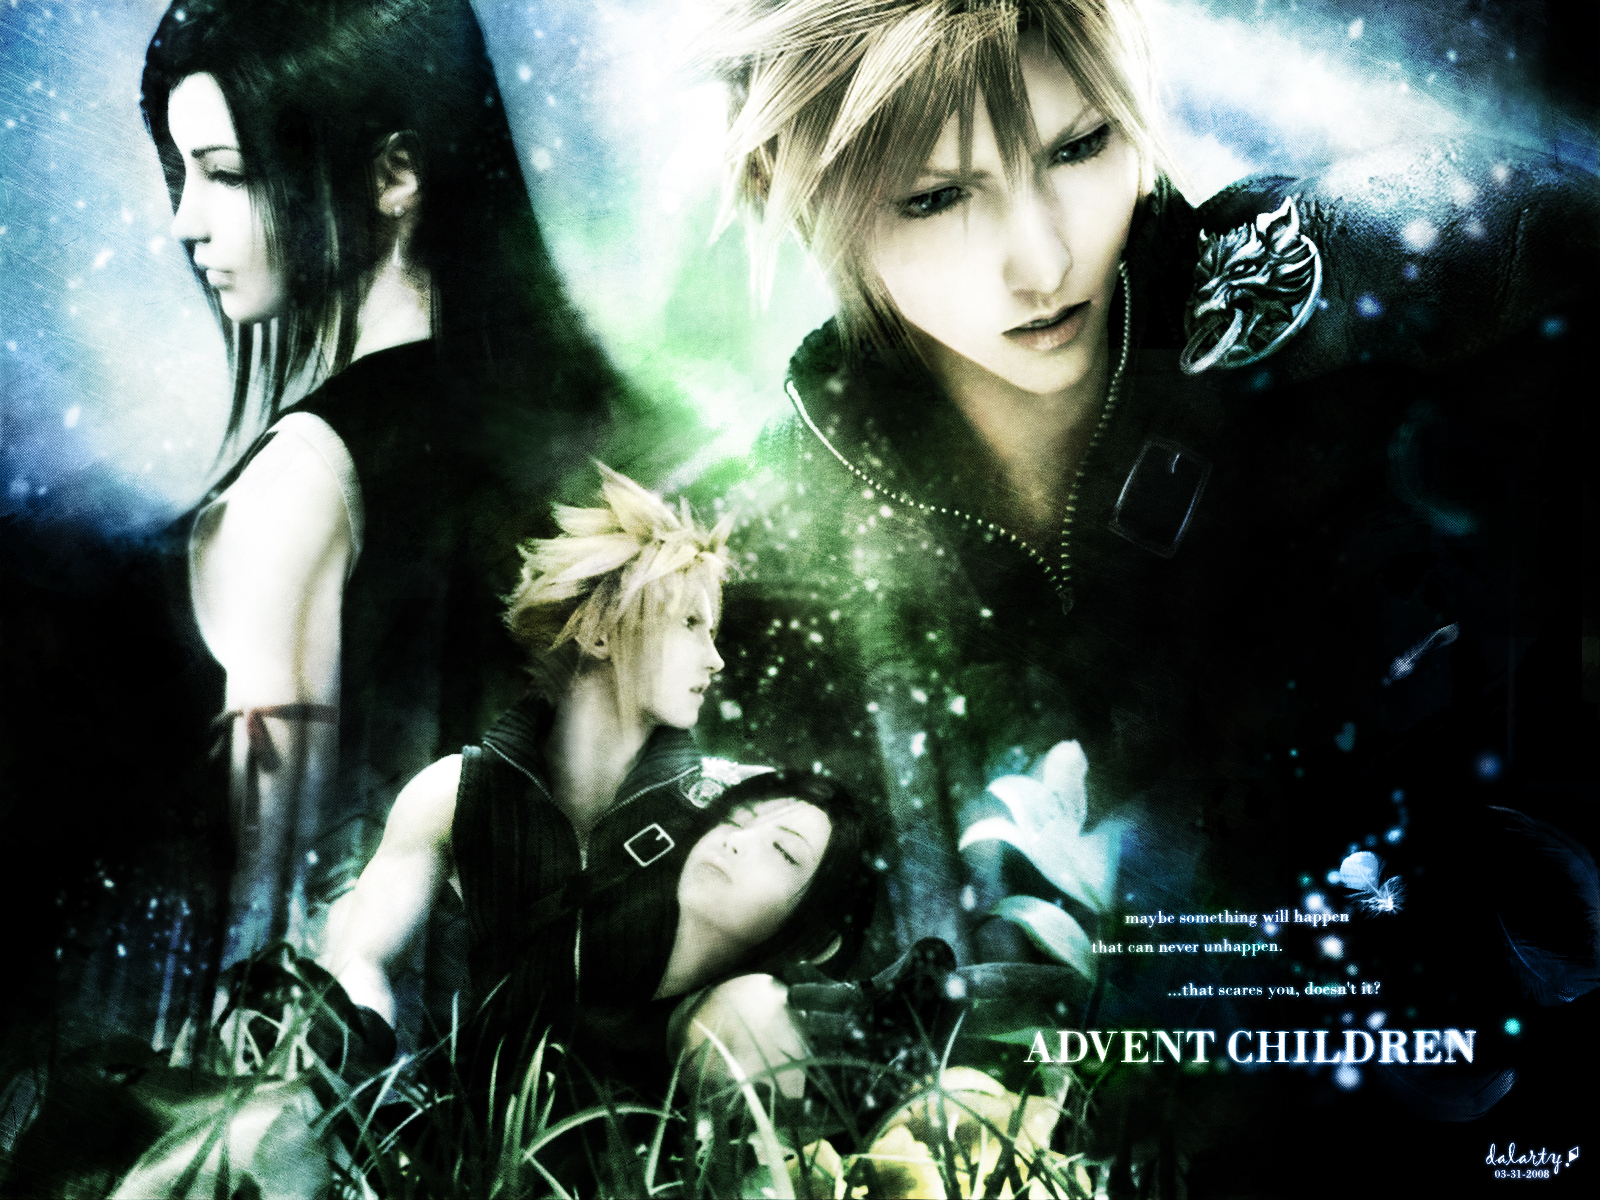 Final Fantasy Vii Anime Wallpaper 1600x1200 Full HD Wallpapers 1600x1200